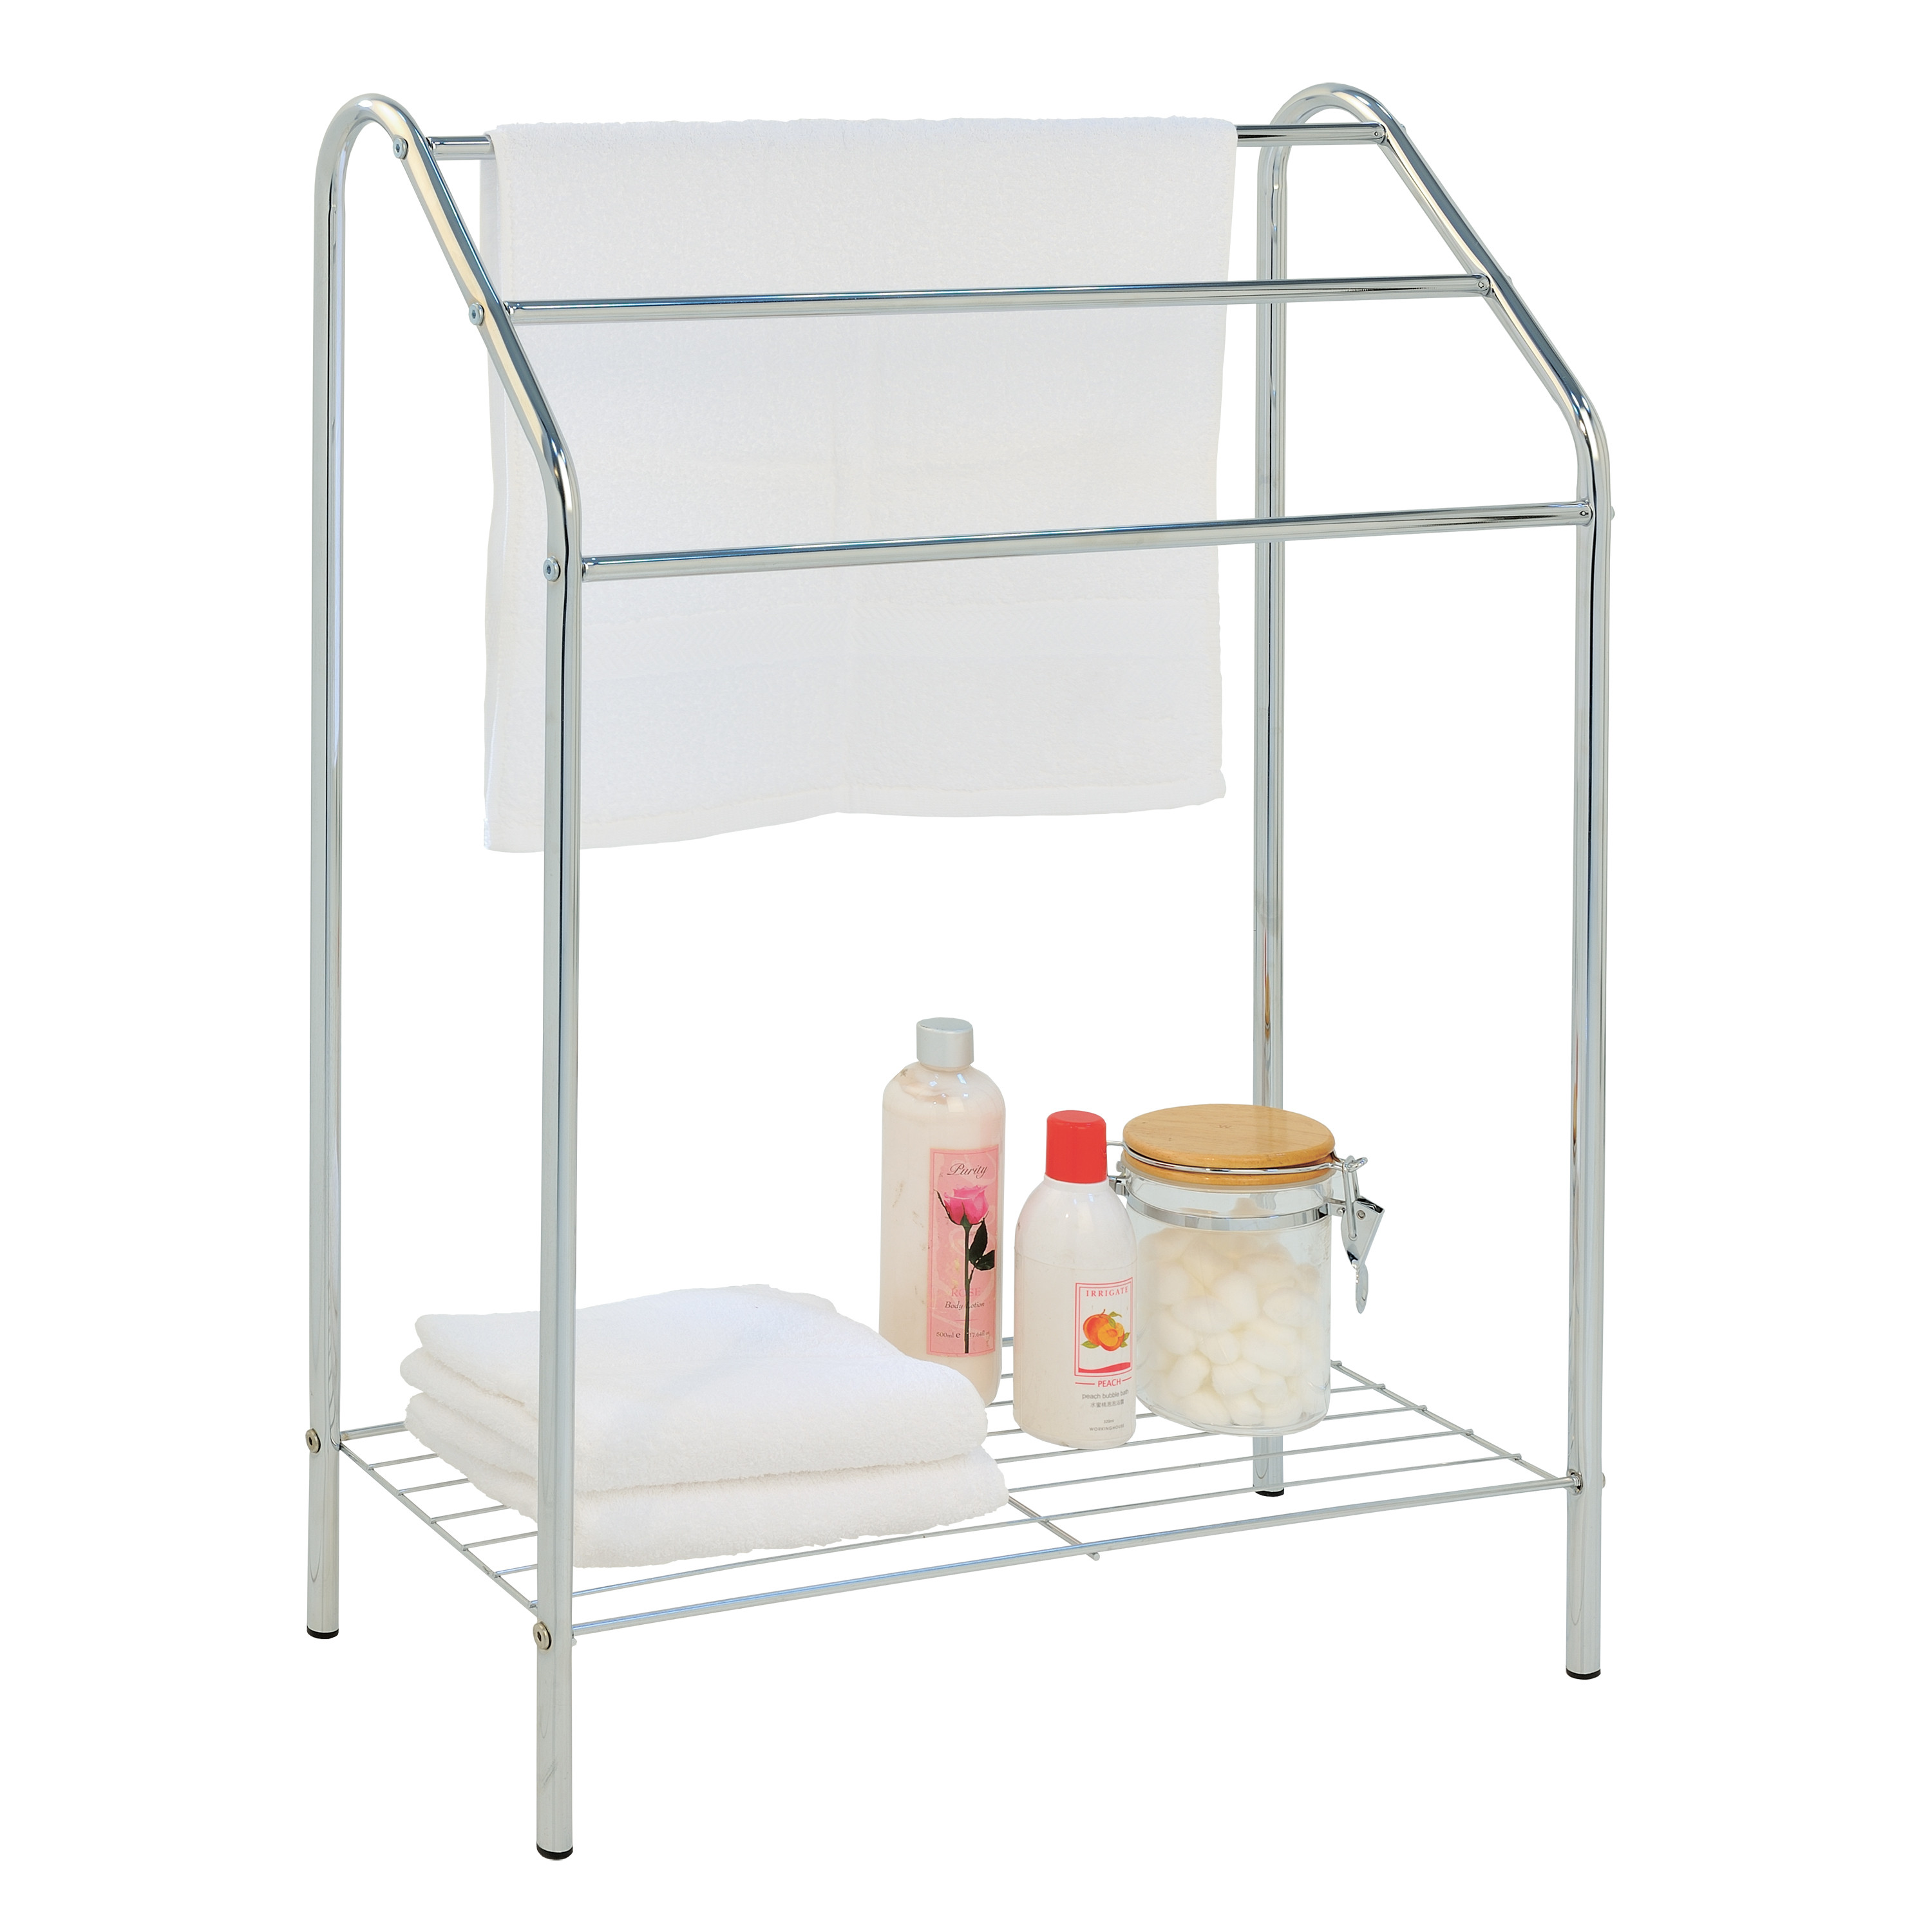 Towel Holder with Shelf Air | White